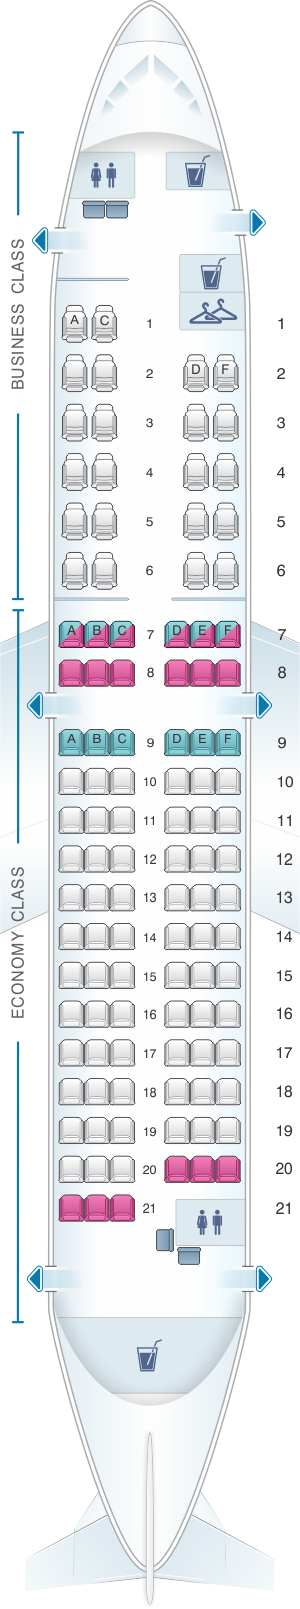 Seat map for TAROM Airbus A318 111 107pax